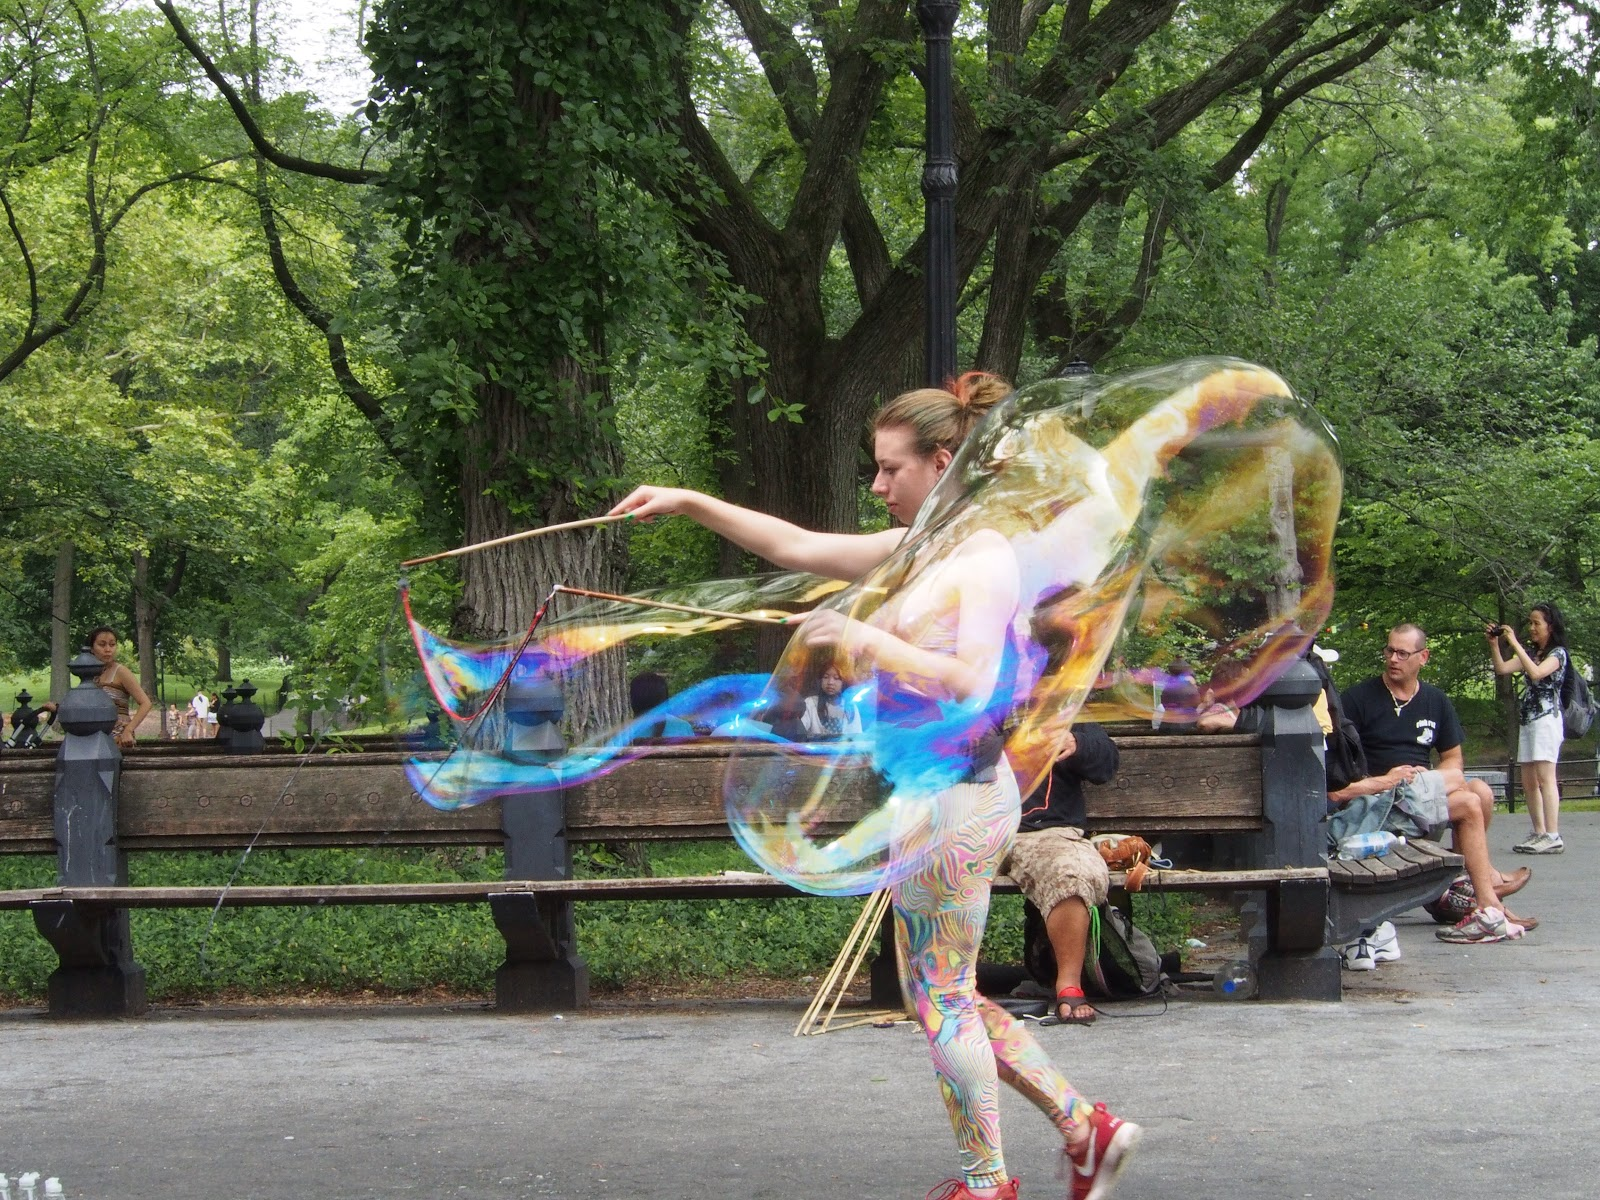 Blowing bubbles #nyc #street #blowingbubbles #streetperformers #street #bubbles #centralpark #nyc 2013